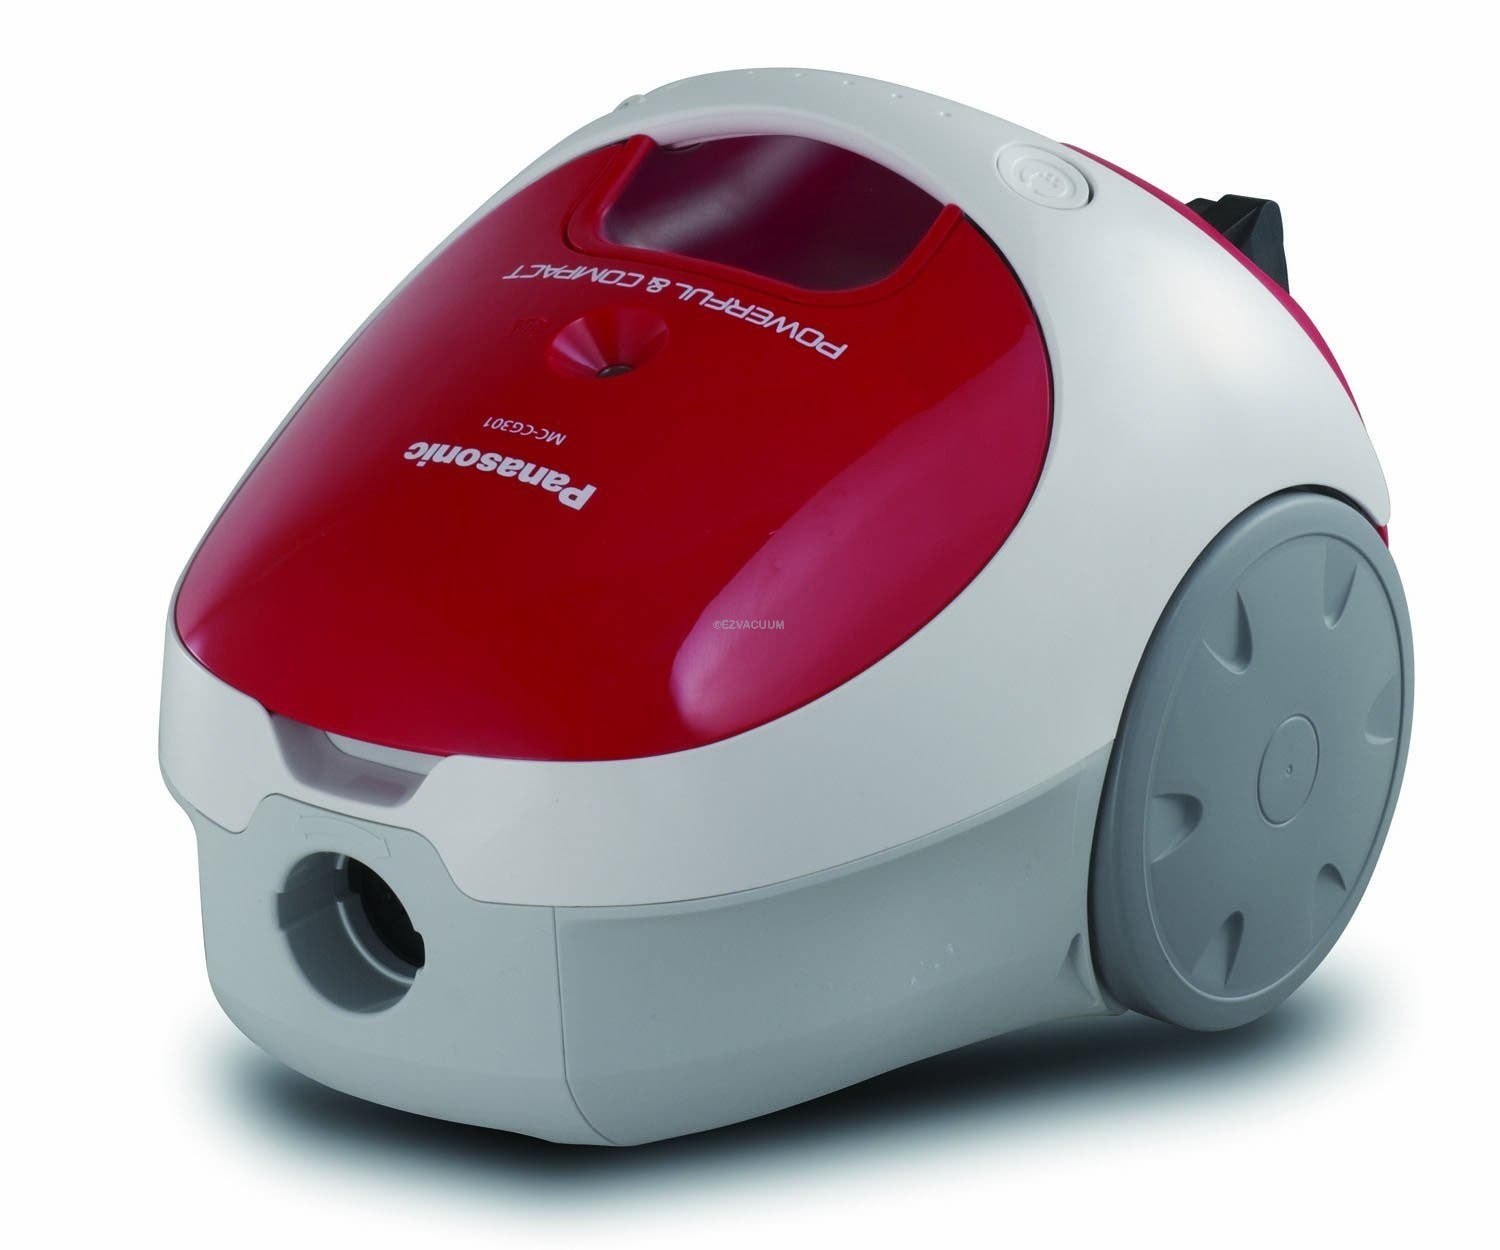 Panasonic Mc Cg301 Bag Suction Canister Vacuum Cleaner Red